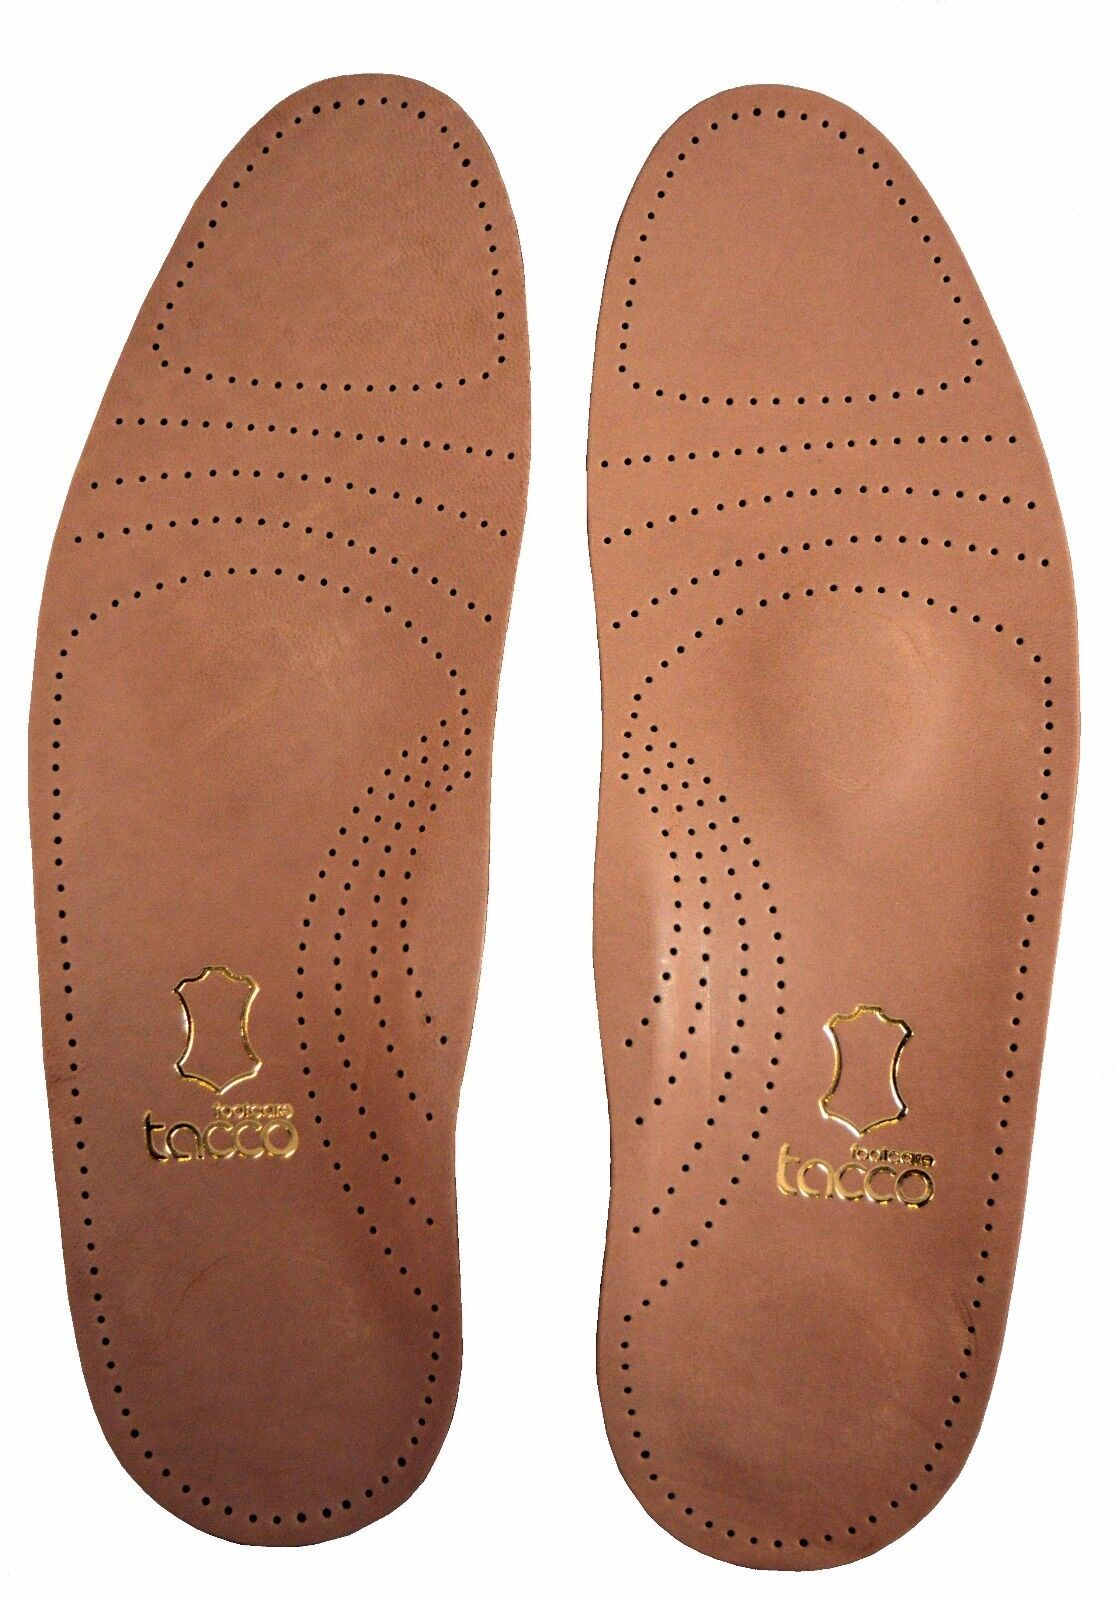 TACCO FULL LENGTH ARCH SUPPORT INSOLES